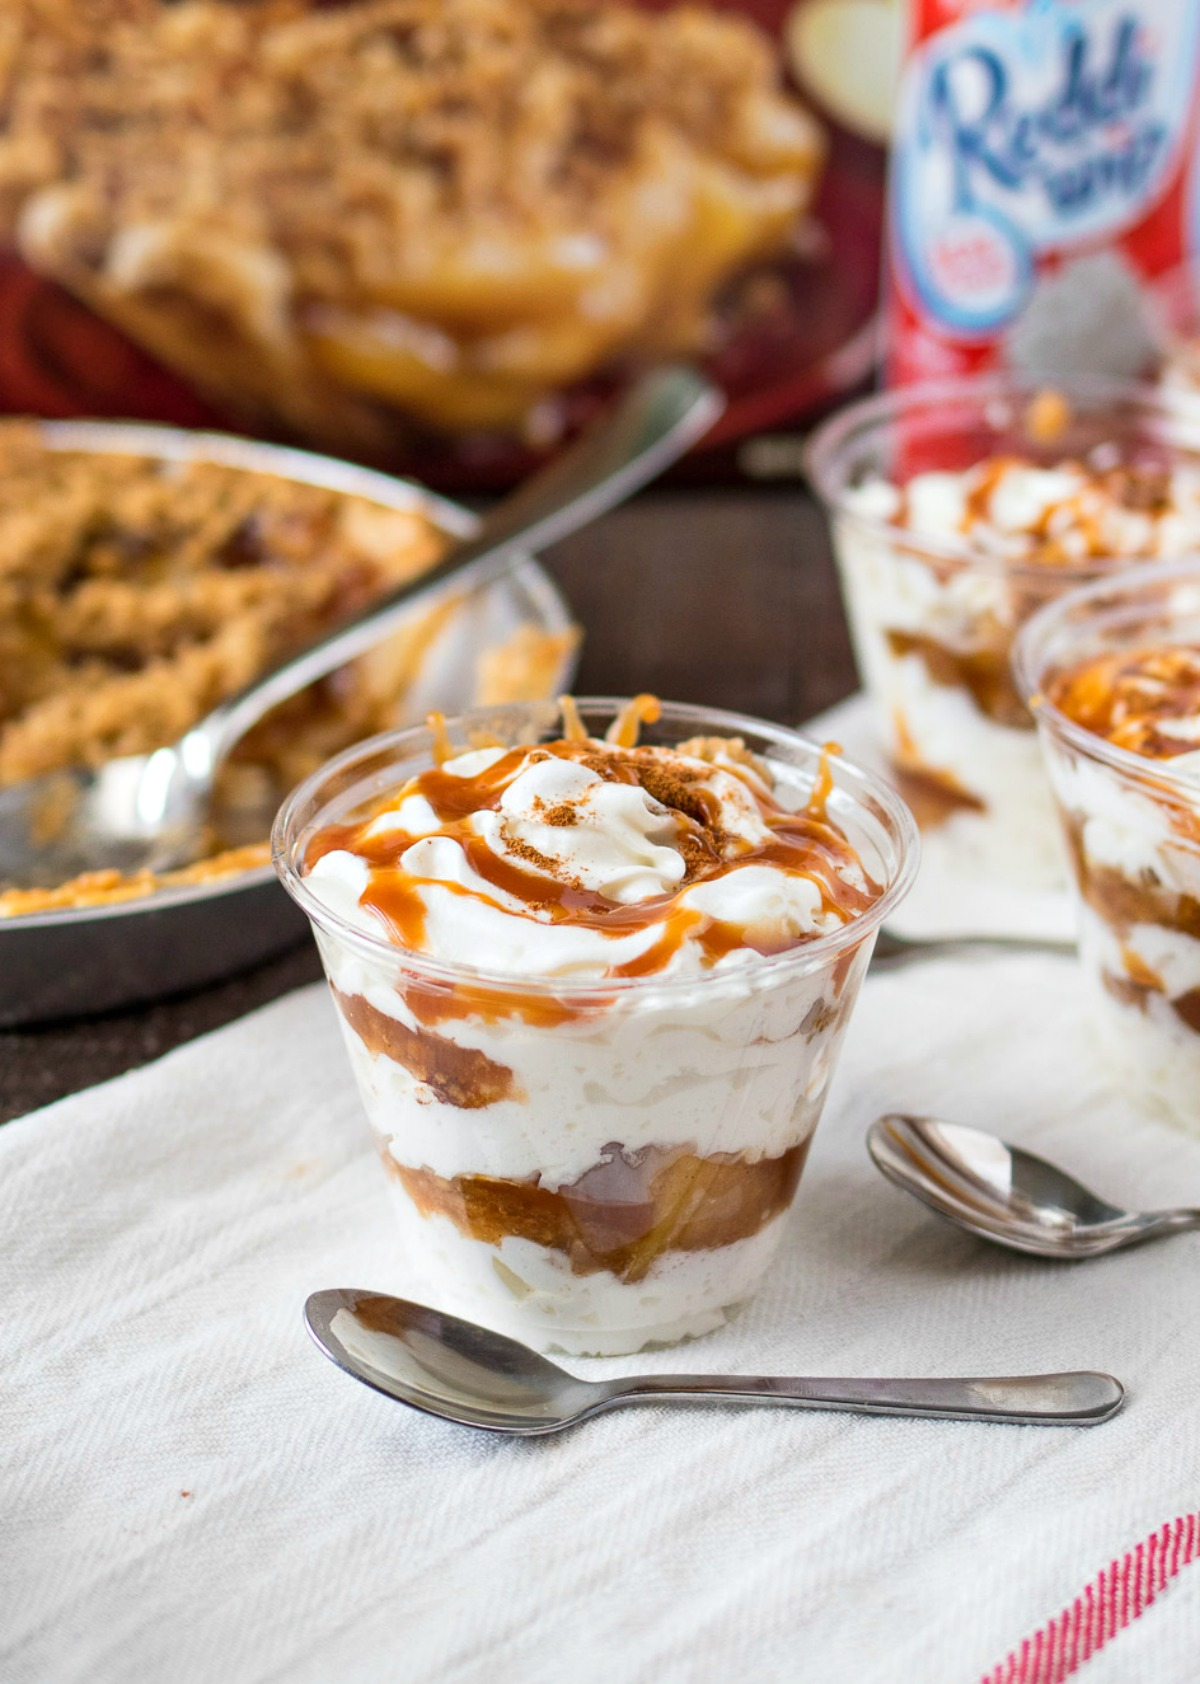 Cup of Salted Caramel Apple Pie Parfaits